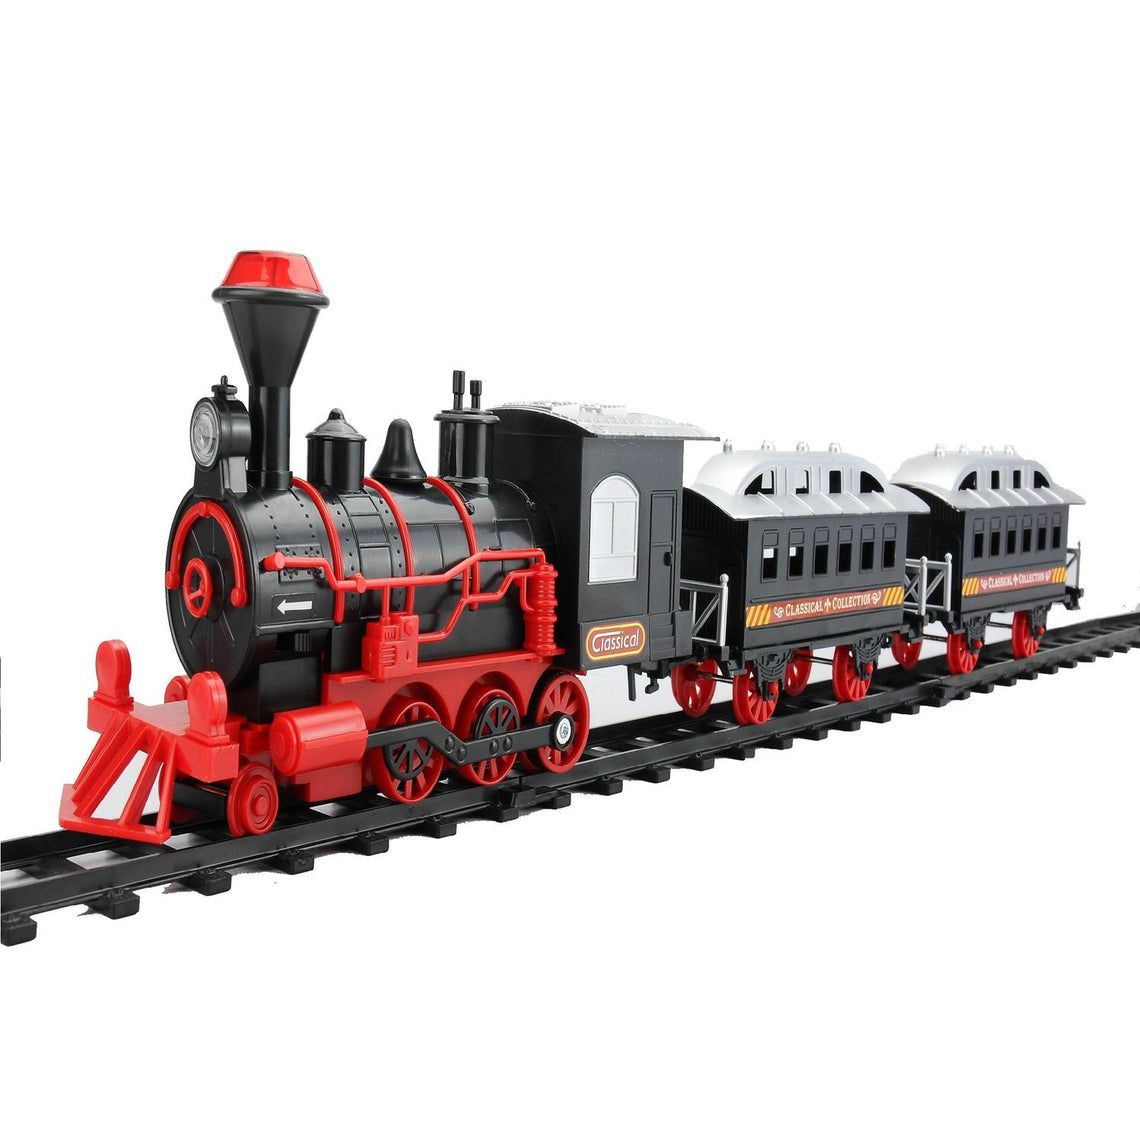 13-Piece Red and Black Battery Operated Lighted and Animated Classic Train Set with Sound